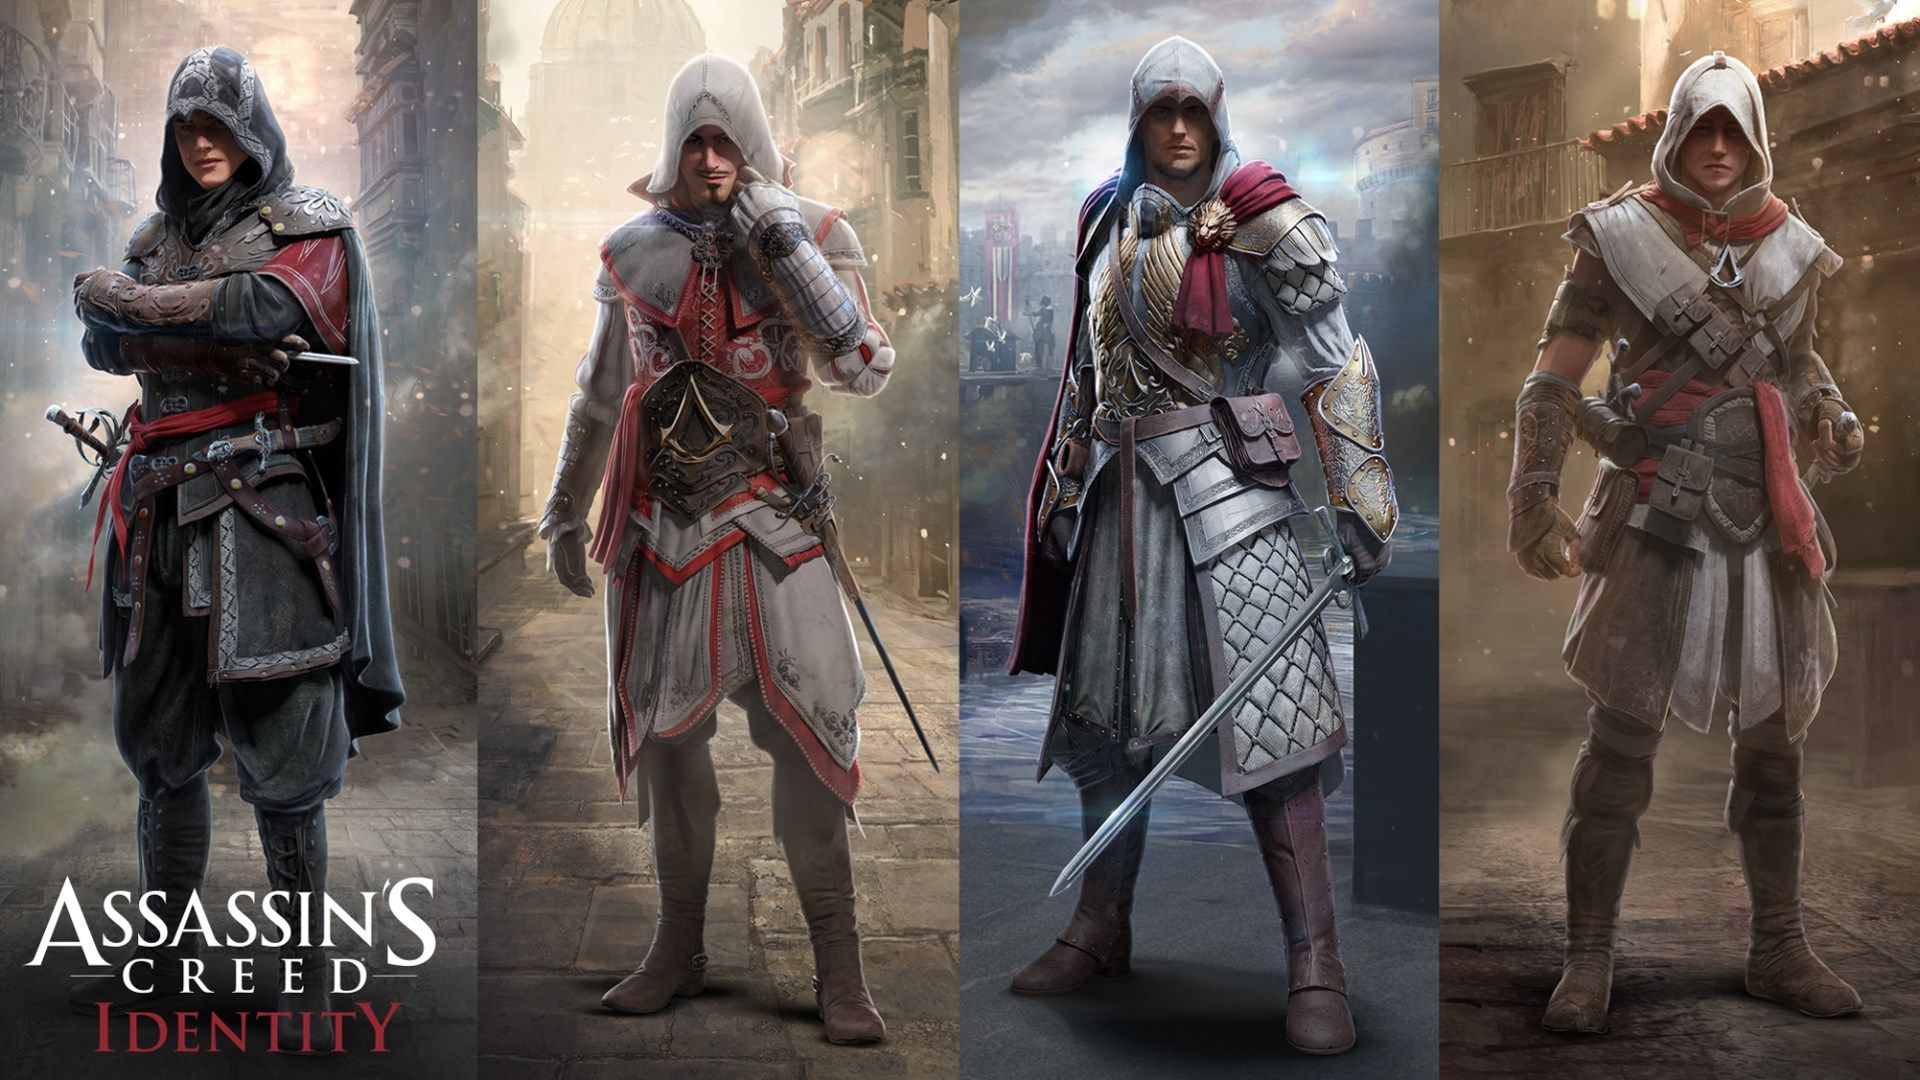 1920x1080 Assassins Creed Identity game wallpaper